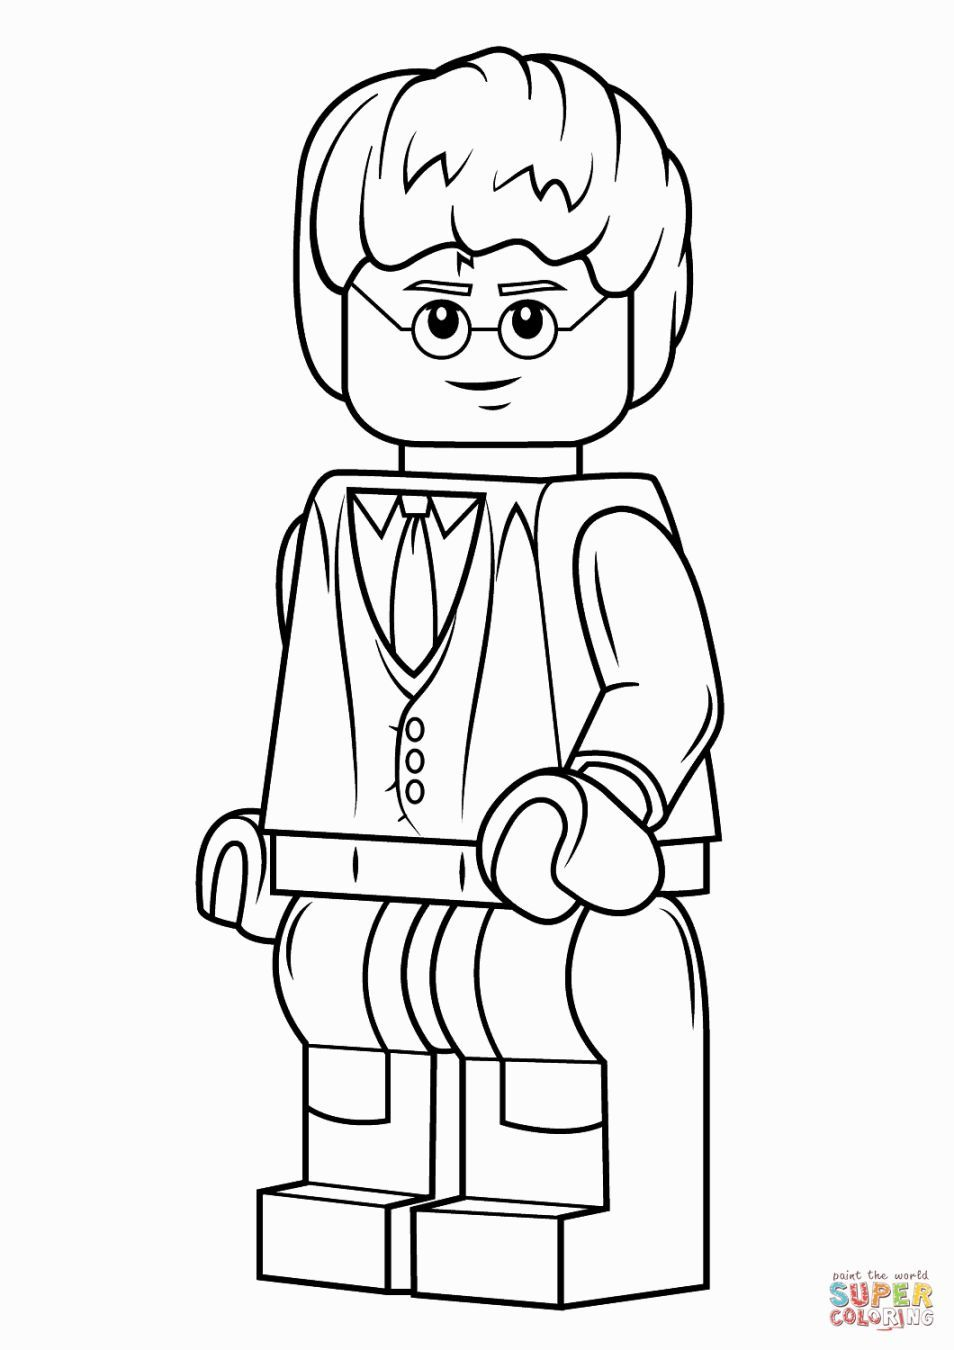 Lego Harry Potter Coloring Pages Harry Potter Coloring Pages Lego Coloring Pages Harry Potter Colors